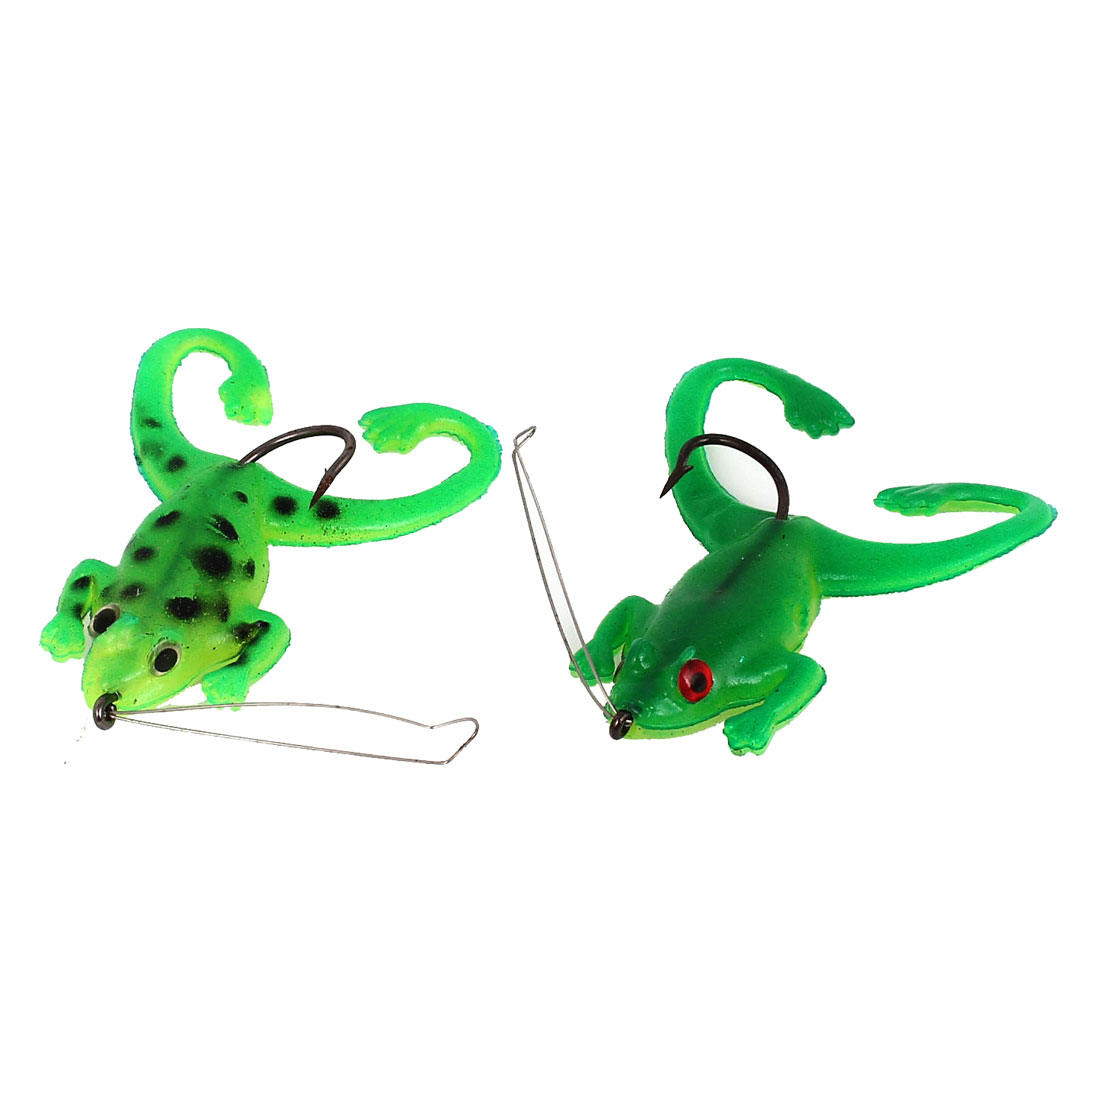 2pcs Green Black Silicone Simulation Frog Design Fishing Angling Hooks Bait Lure